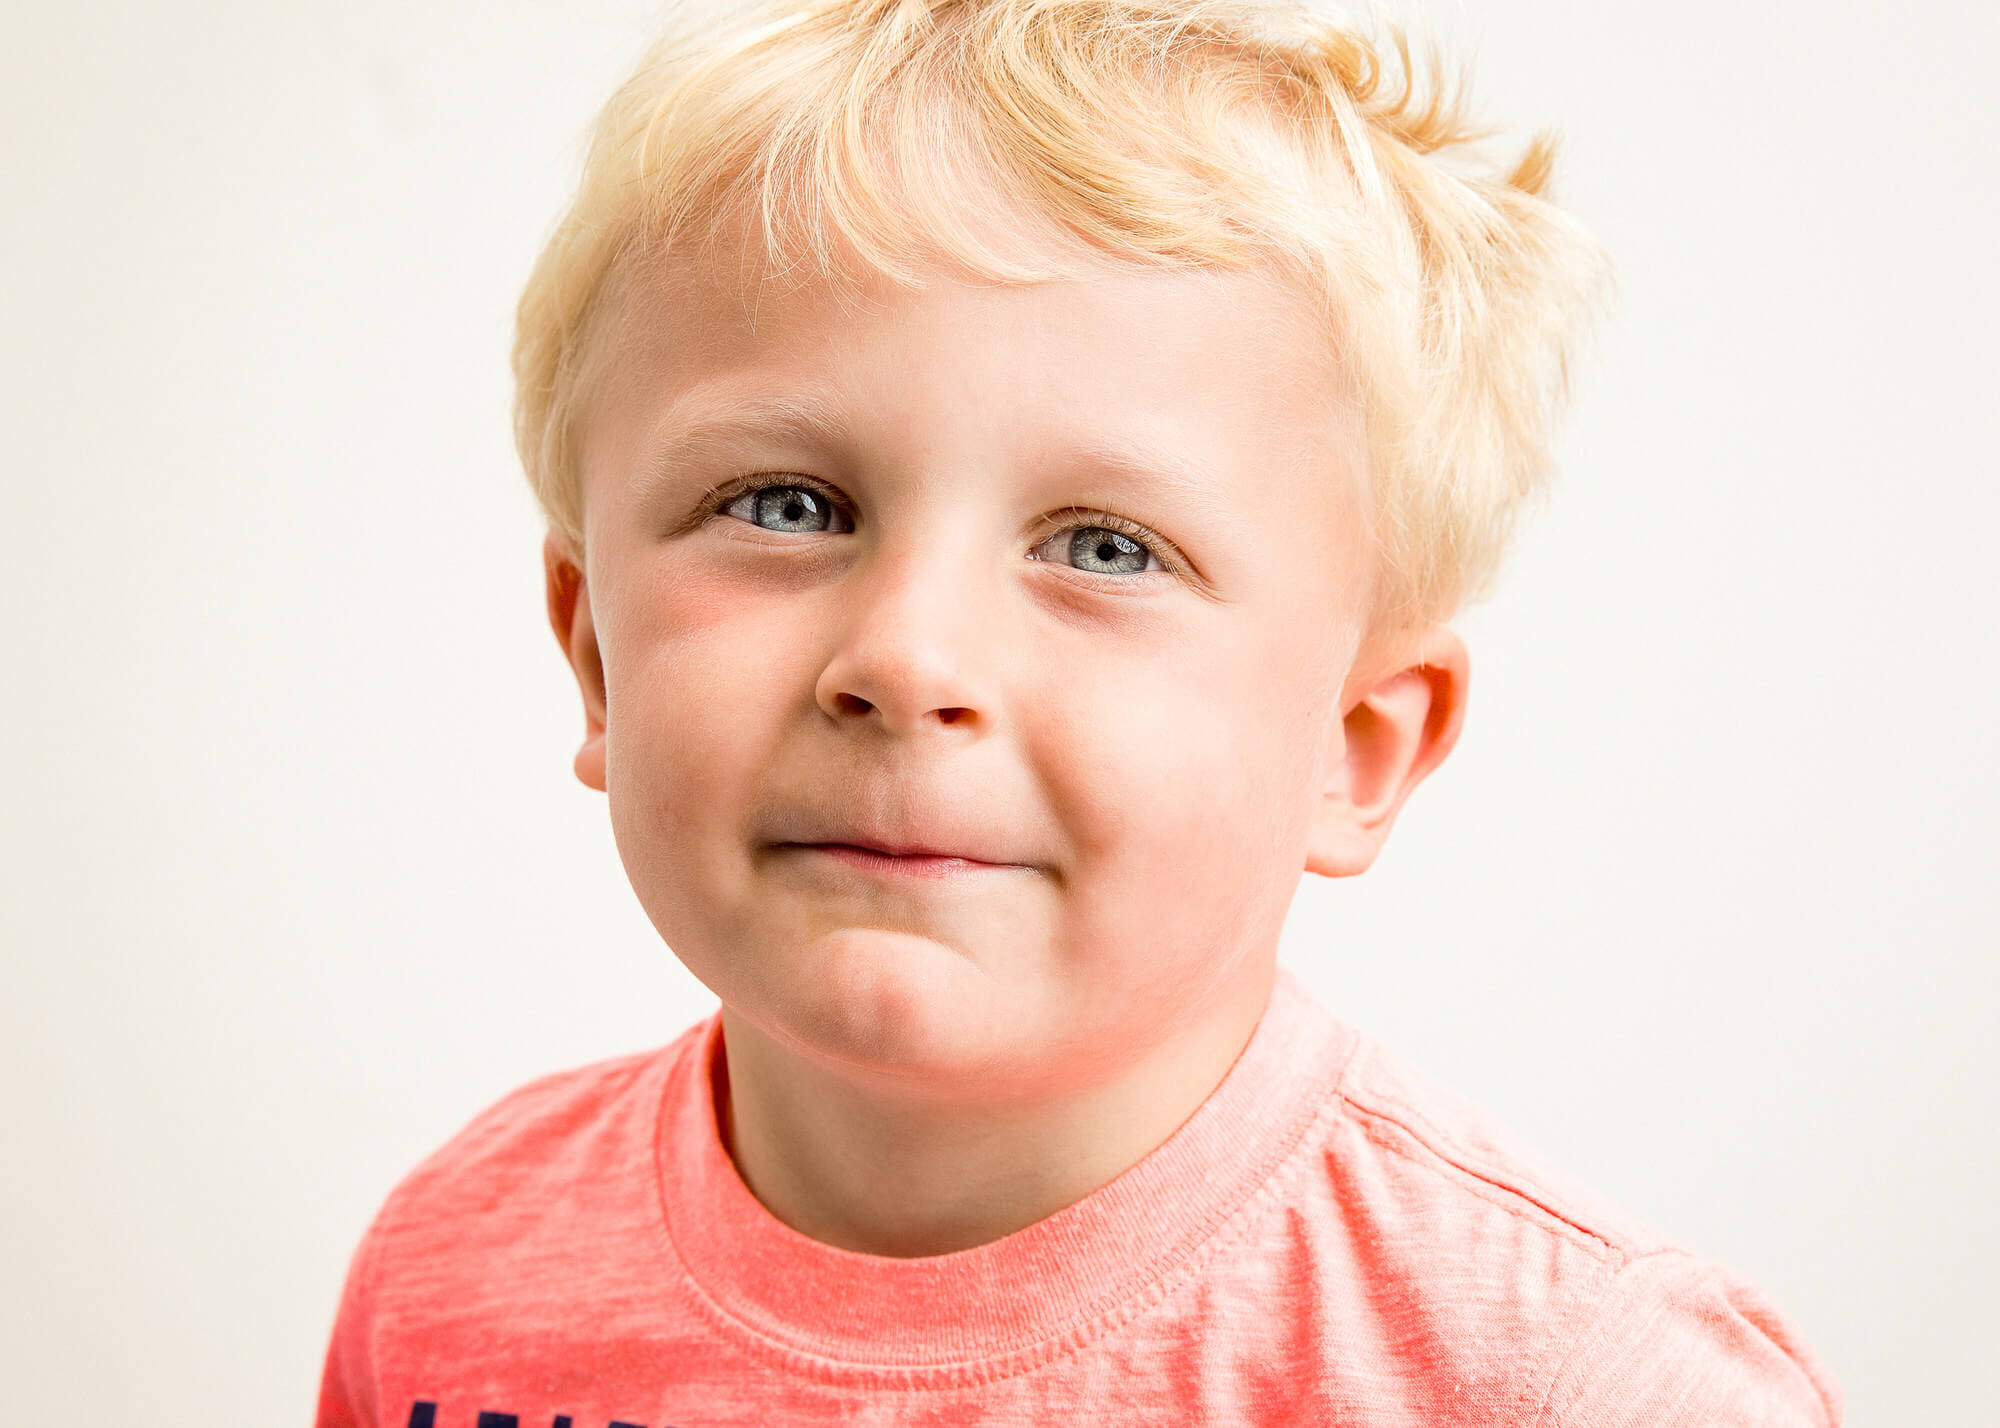 Portrait of young blonde boy